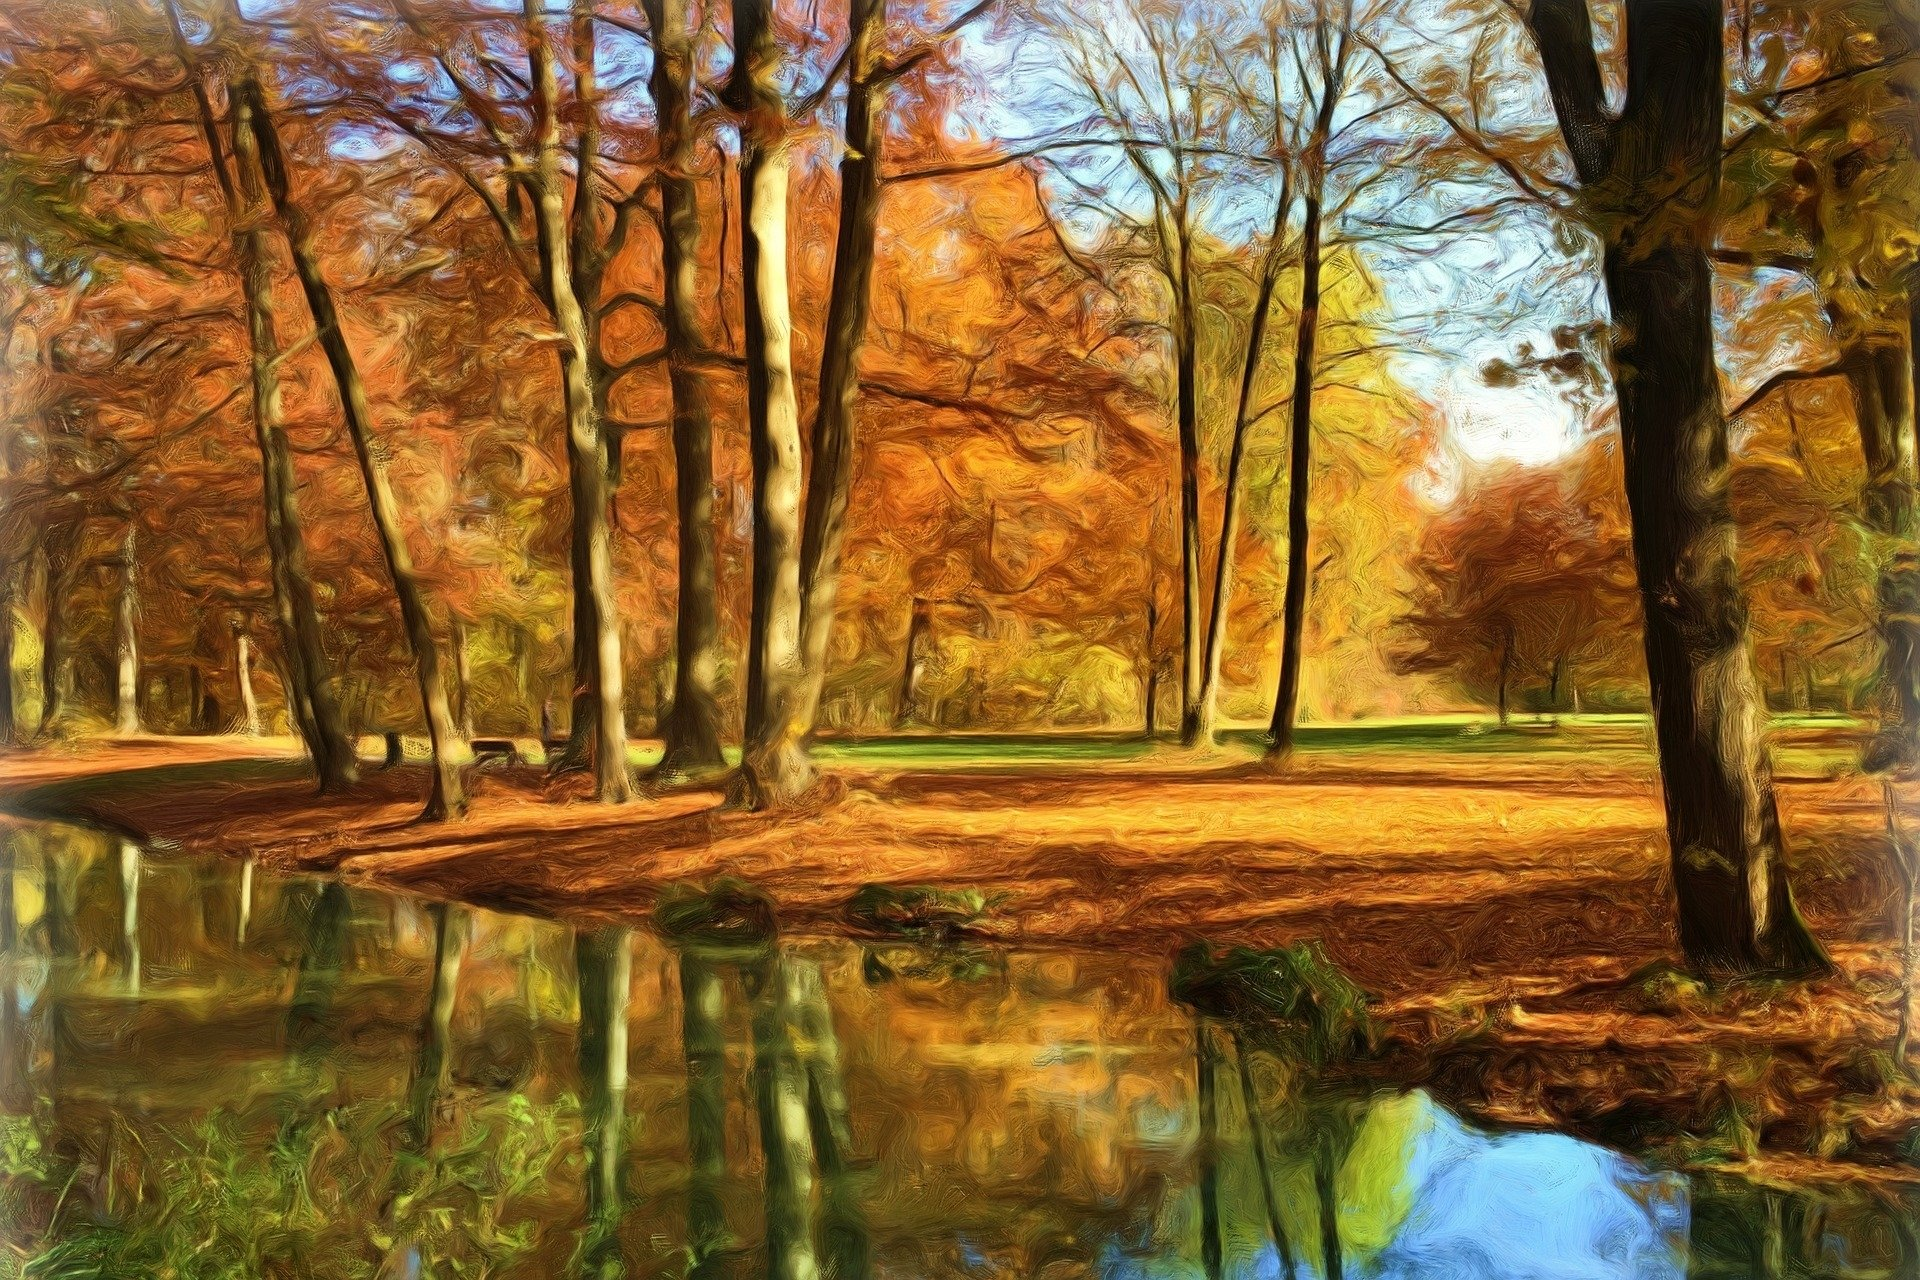 Nature Wallpaper Autumn Fall 1600x1200 Park Done With An Oil Paint Filter Hd Wallpaper